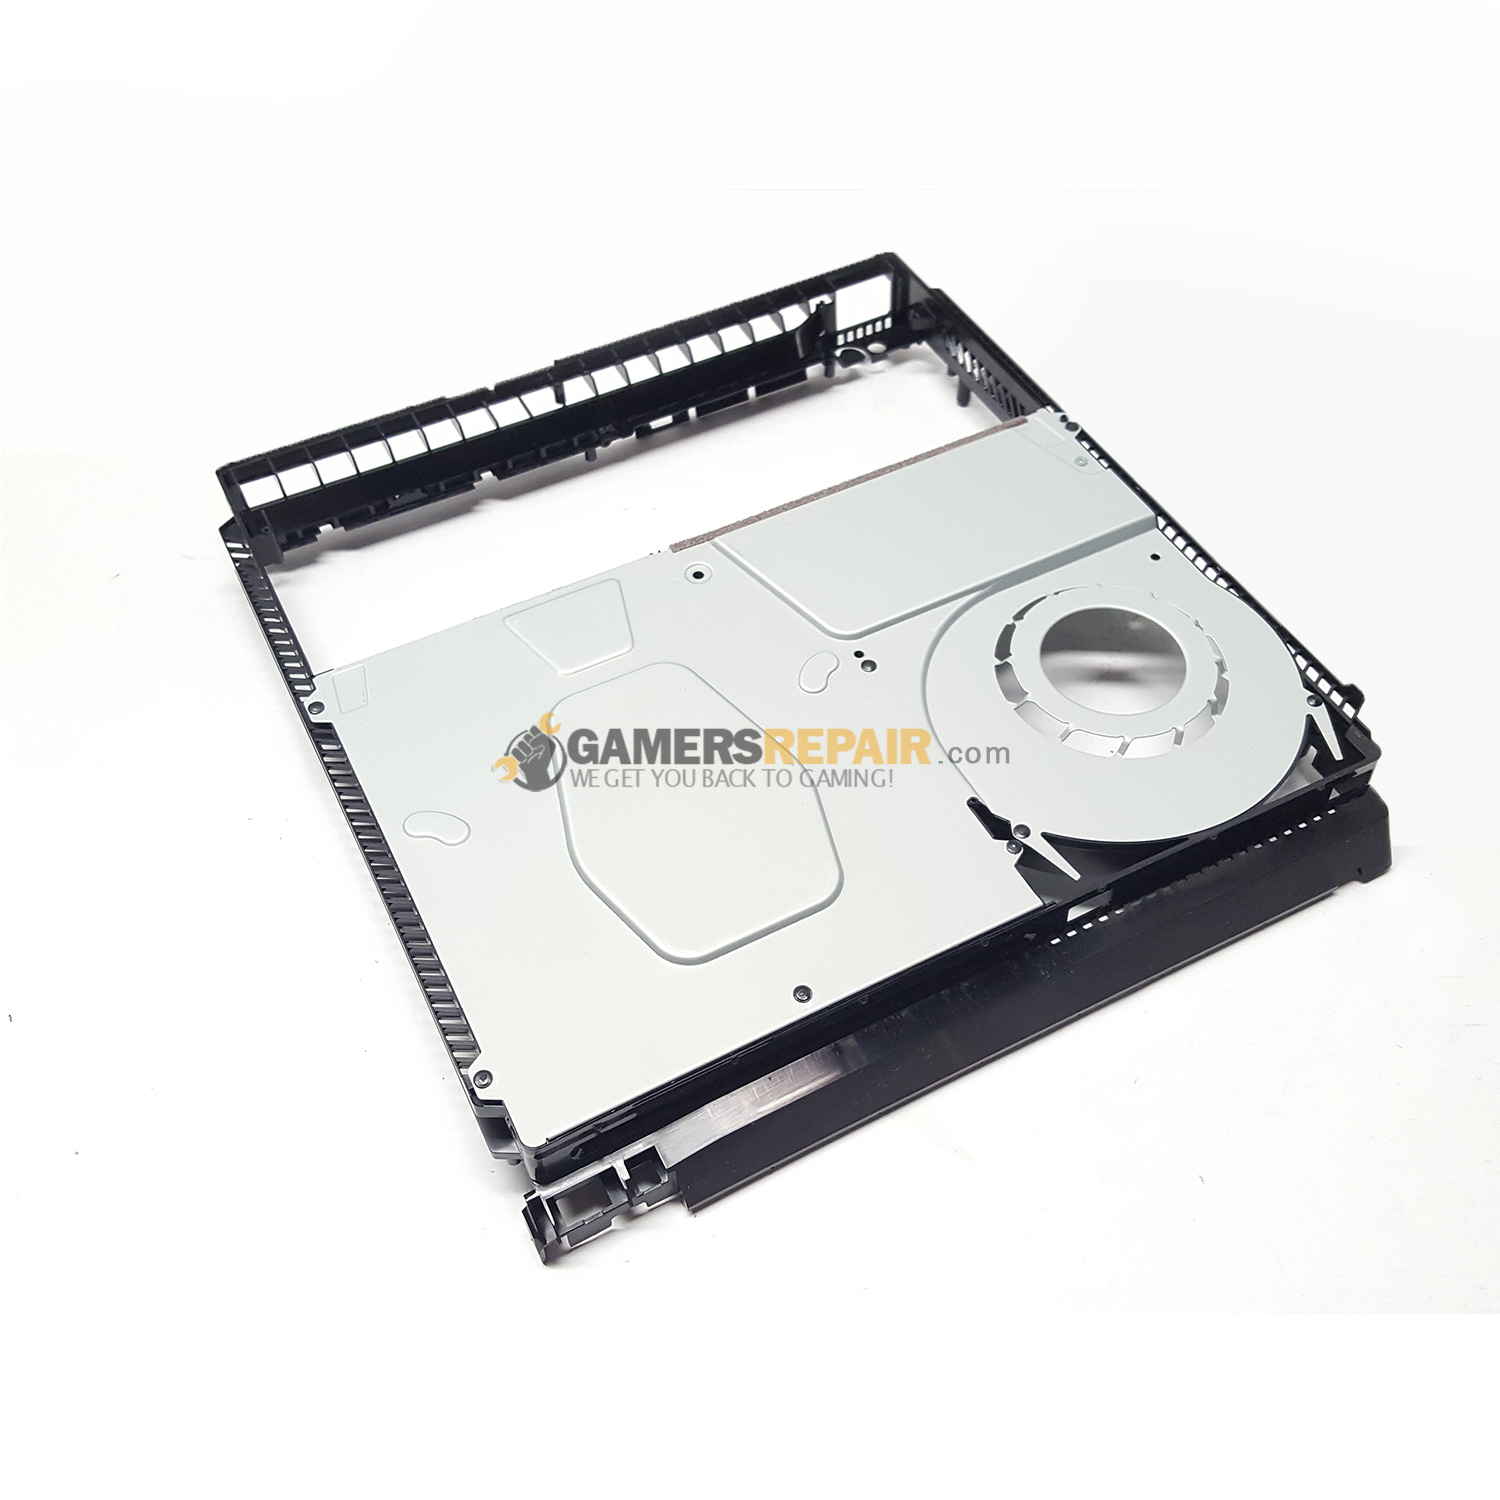 ps4-slim-enclosure-2115.jpg